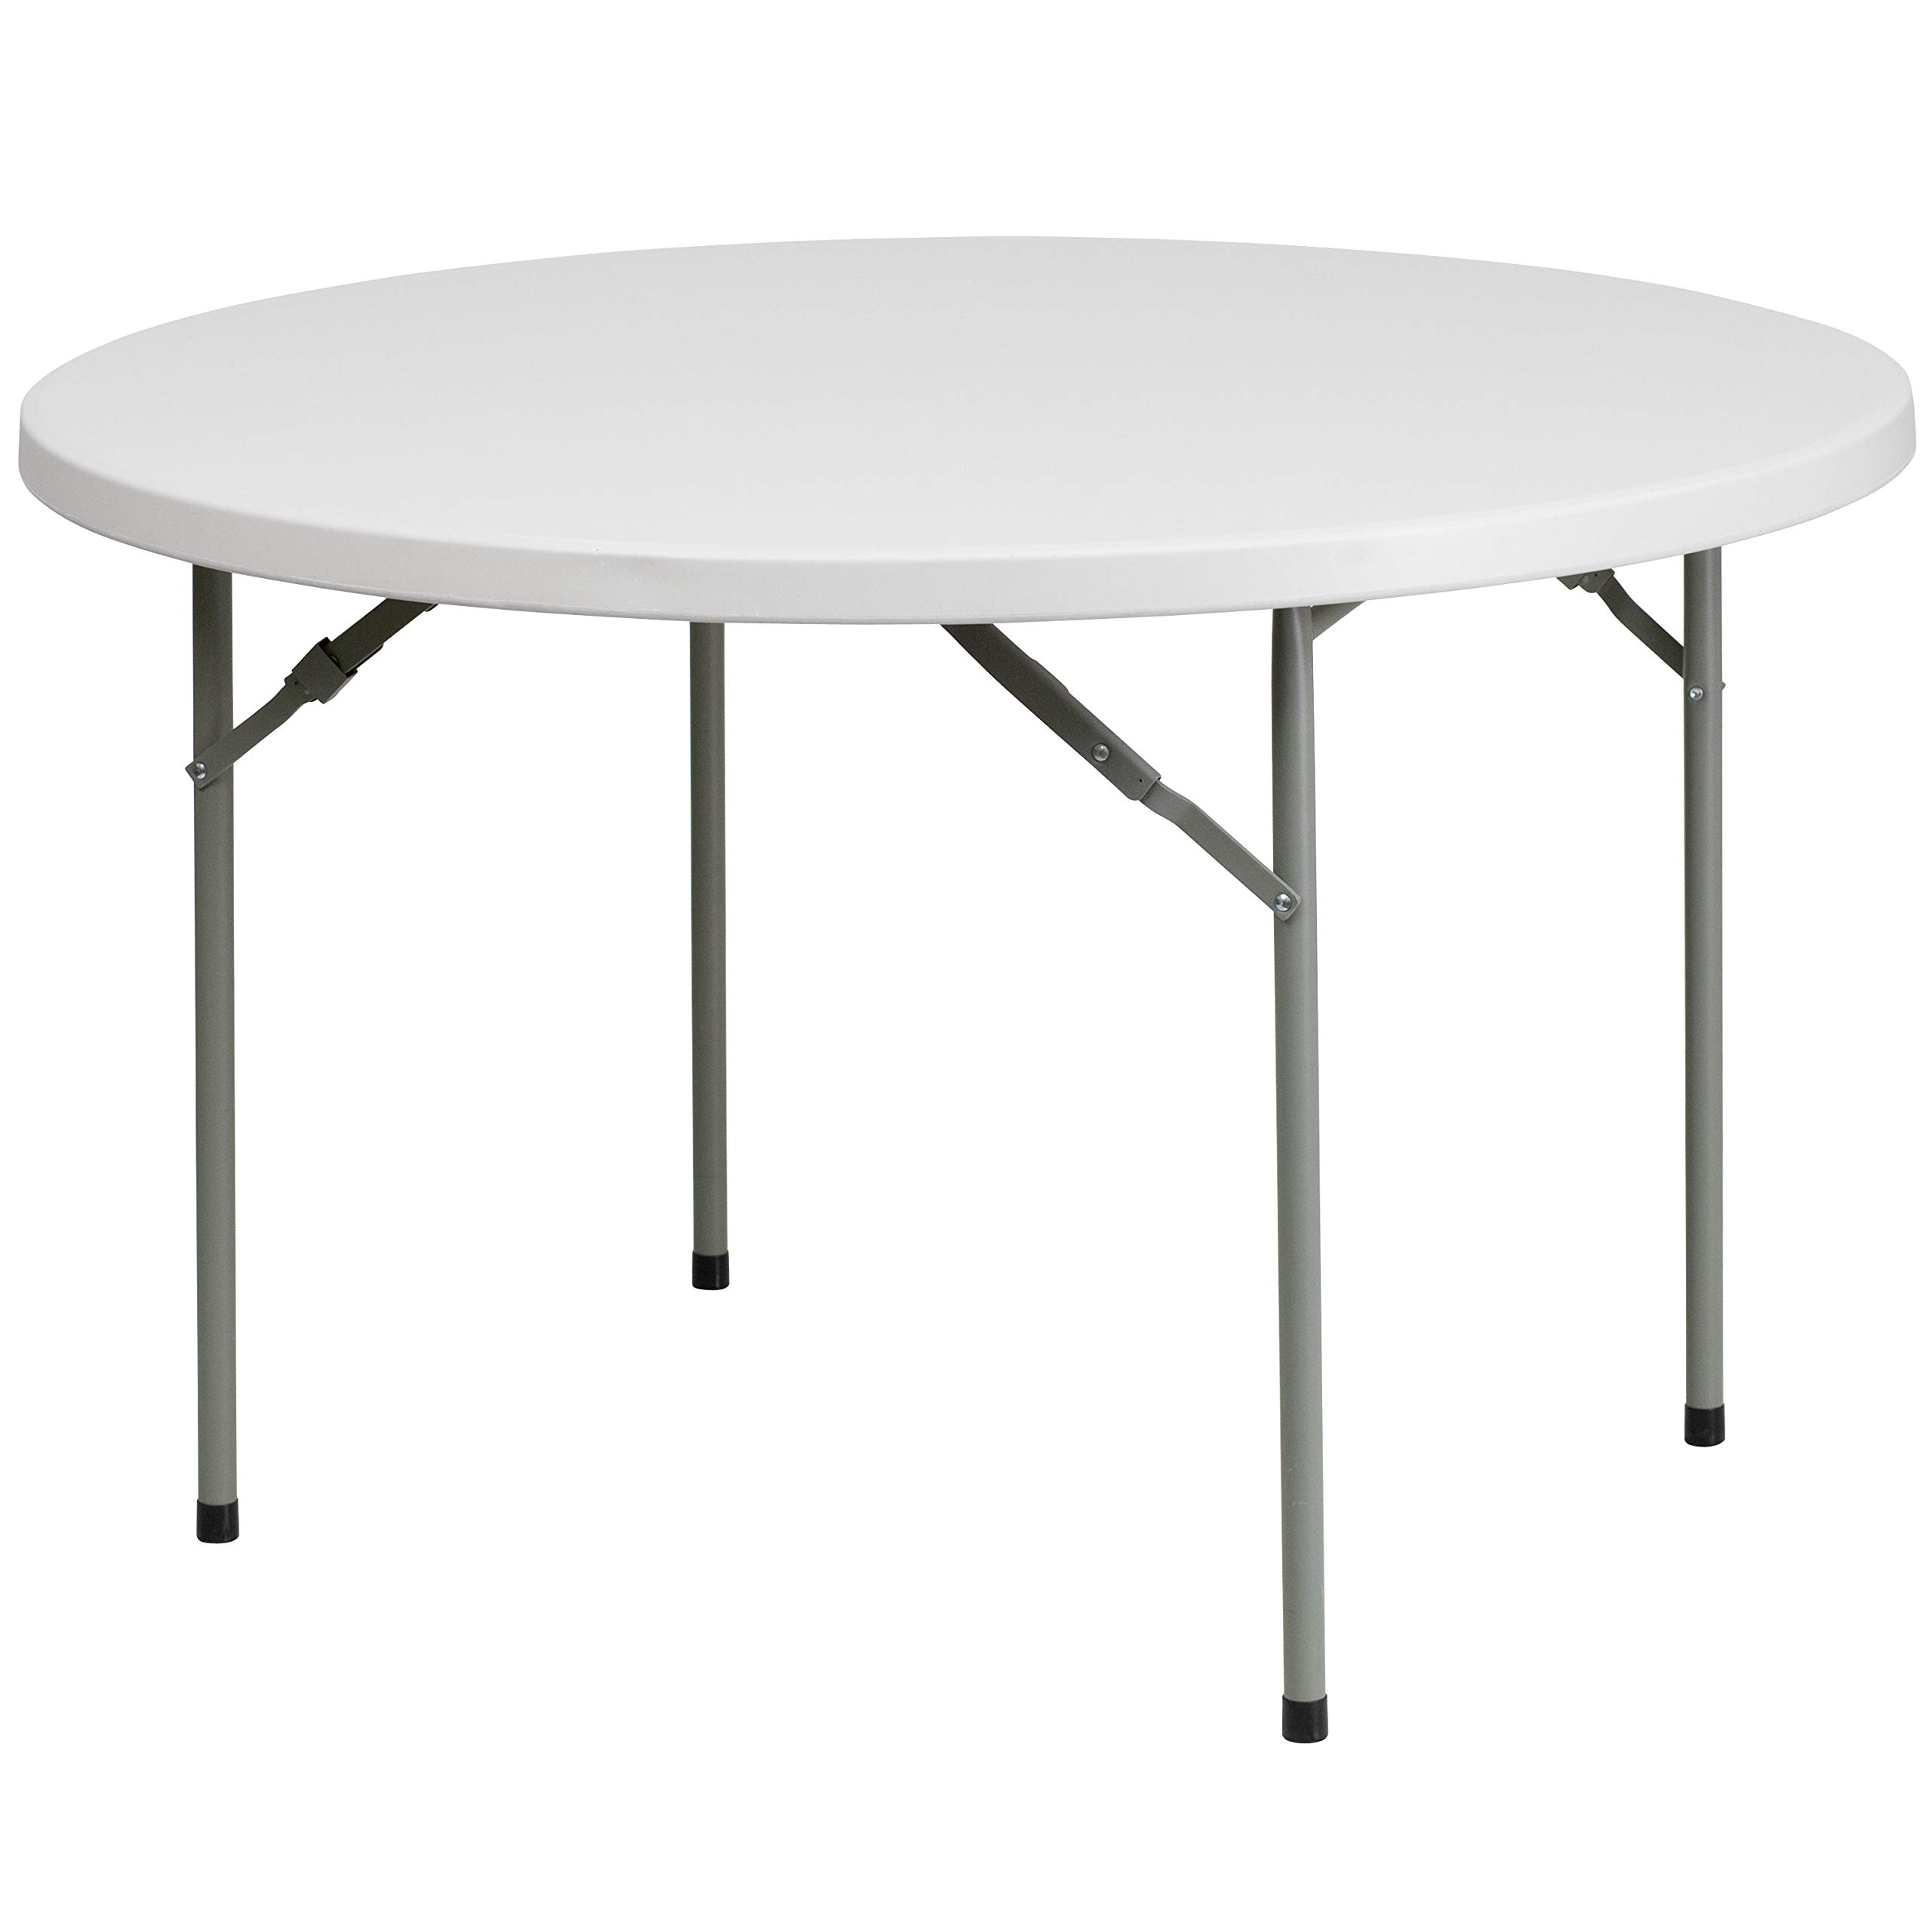 Flash Furniture 48'' Round Granite White Plastic Folding Table [RB-48R-GG] by Flash Furniture